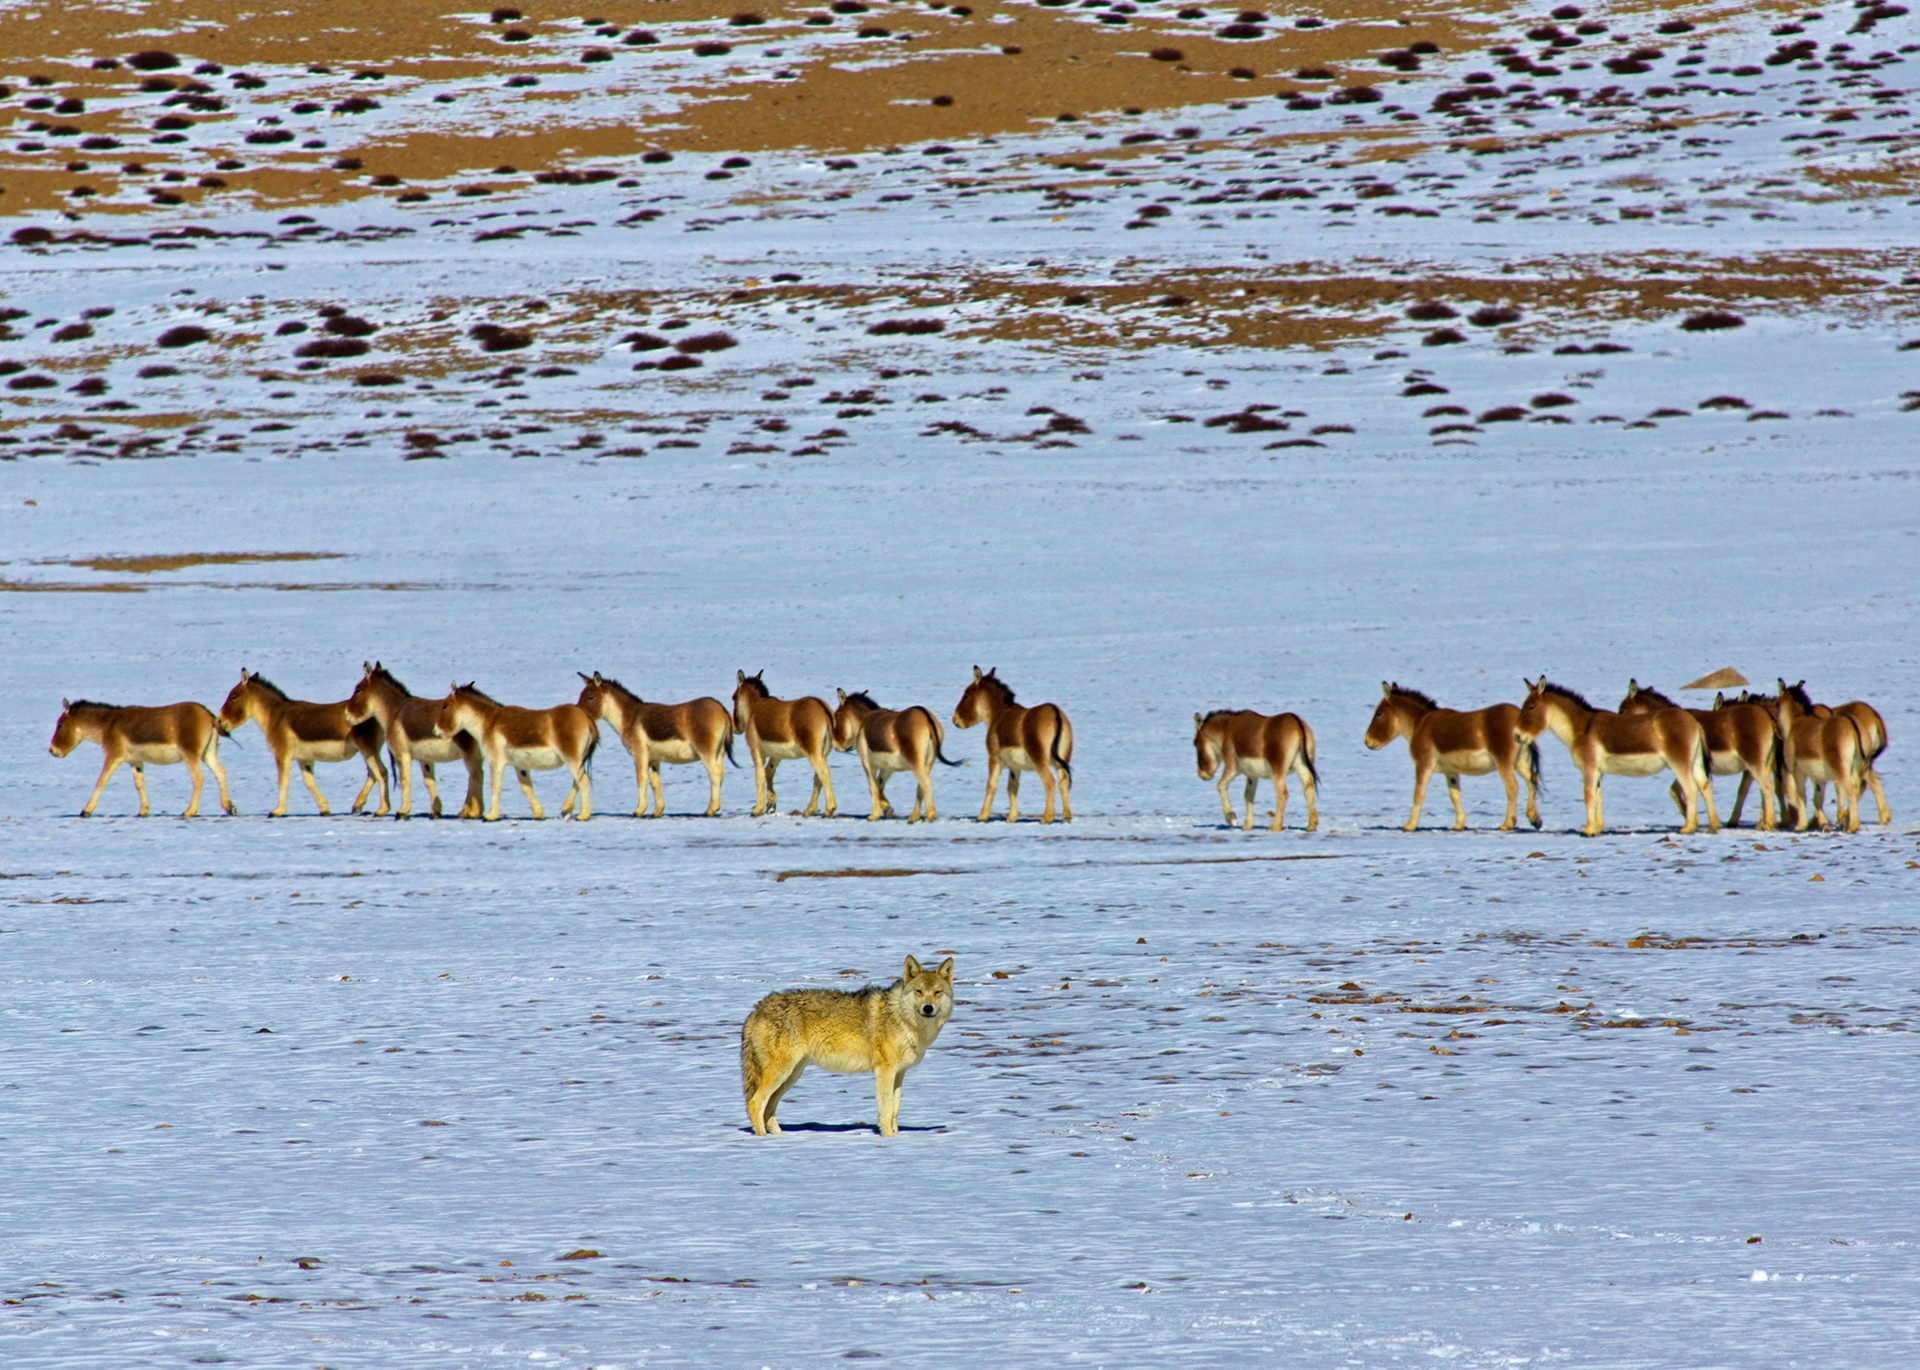 Wolves are the principal predators in the region and packs have been known to hunt kiang, the largest members of the ass family, which is native to the Changthang Plateau. Photo: Dhritiman Mukherjee